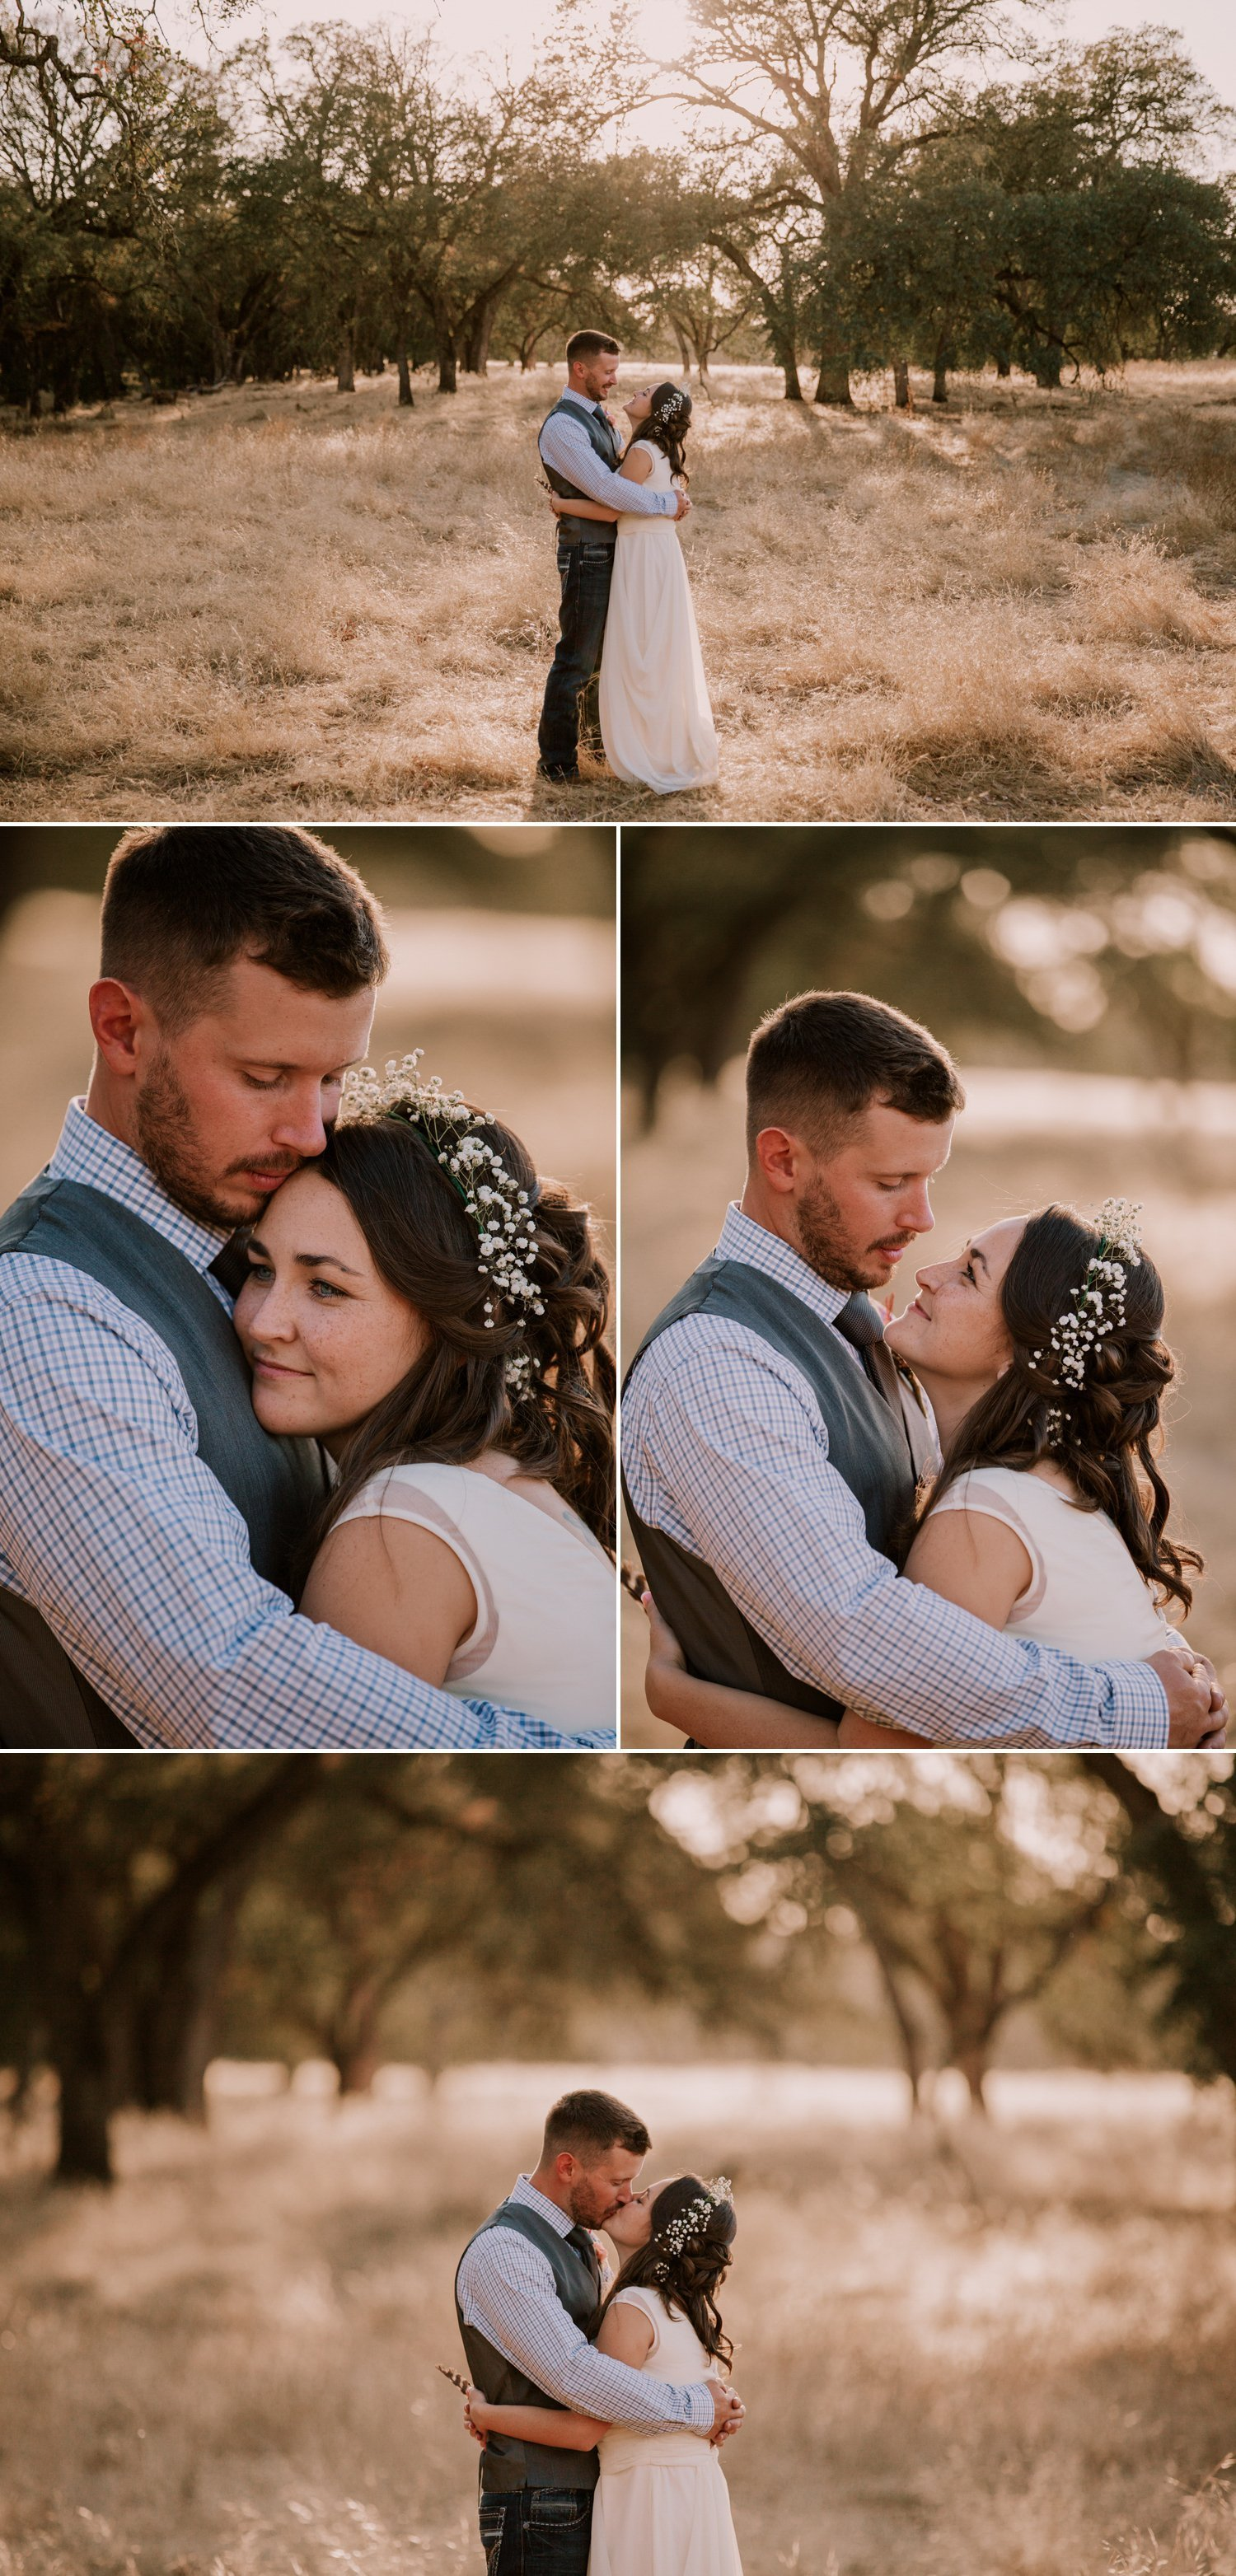 Sacramento wedding photographer Paige Nelson